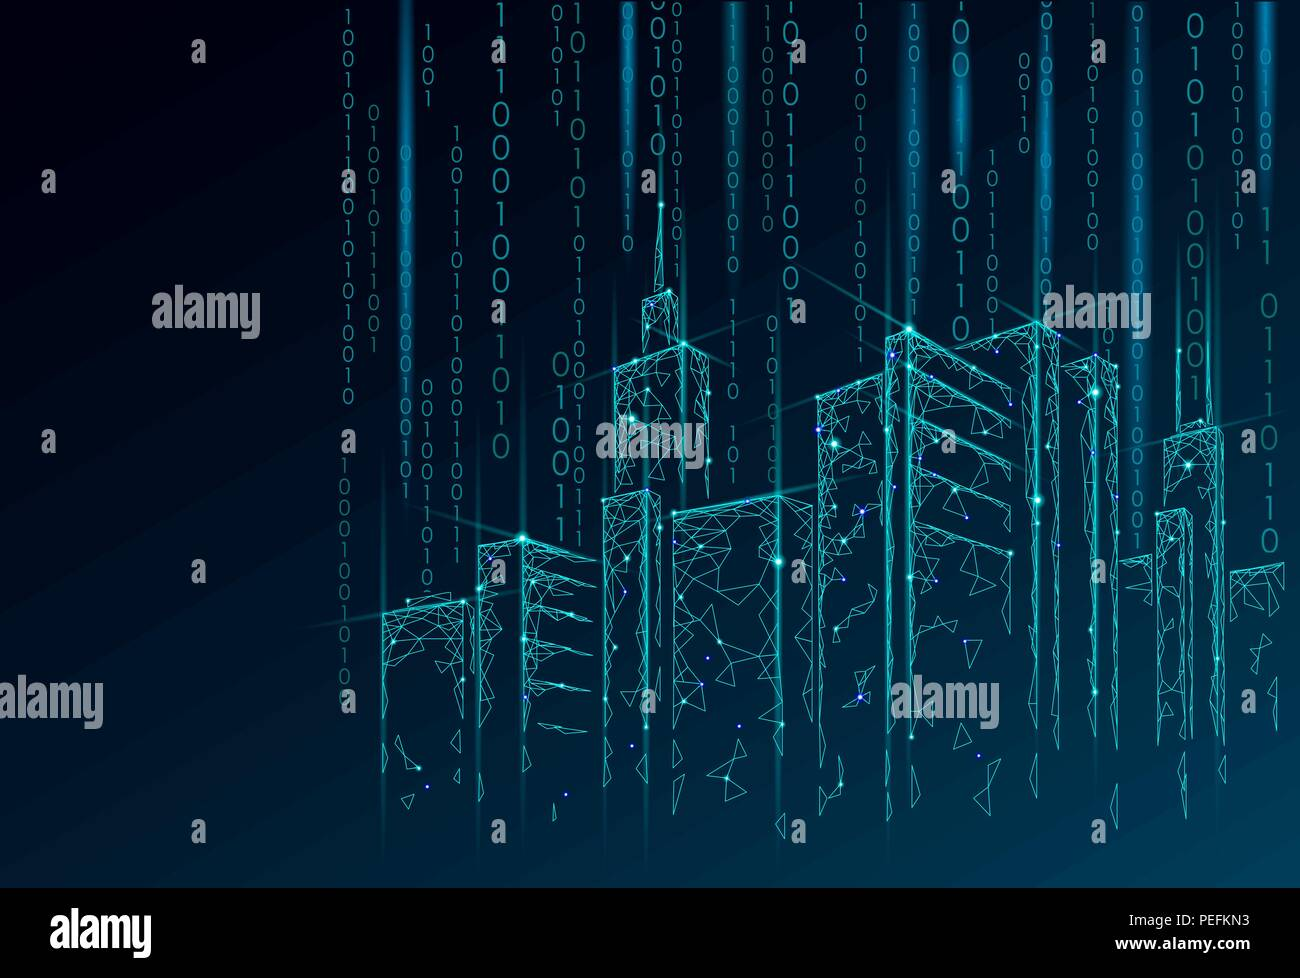 Low Poly Smart City 3d Wire Mesh Intelligent Building Automation Electrical Wiring Numbering System Business Concept Binary Code Number Data Flow Architecture Urban Cityscape